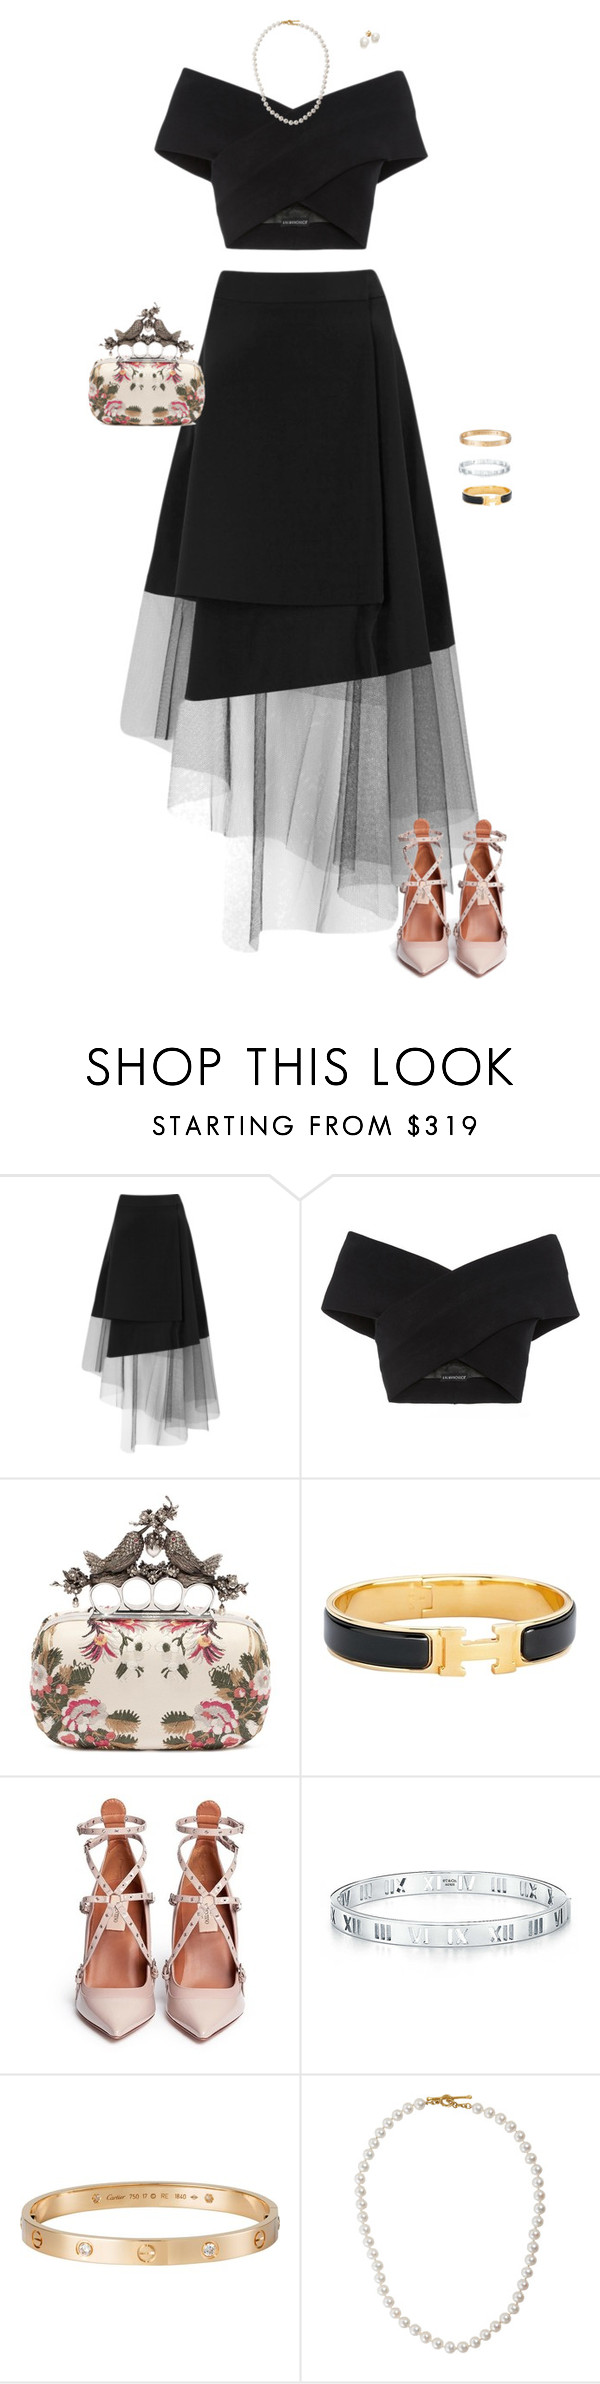 """""""Semi-Formal"""" by americanhorse ❤ liked on Polyvore featuring DKNY, Kalmanovich, Alexander McQueen, Hermès, Valentino, Cartier and Cathy Waterman"""